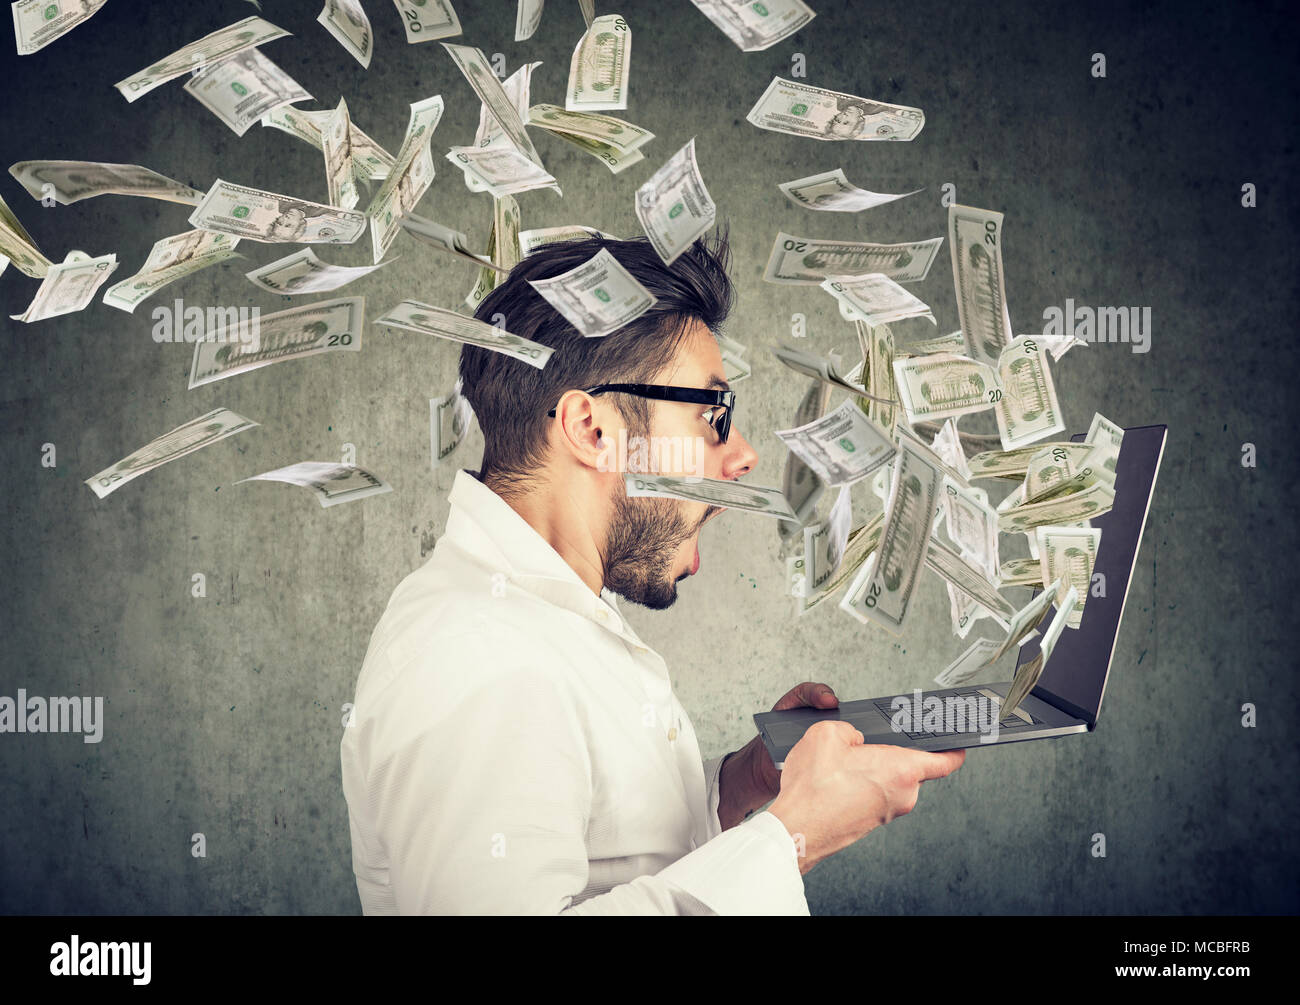 Side view of man holding laptop and winning plenty of money in social media. - Stock Image